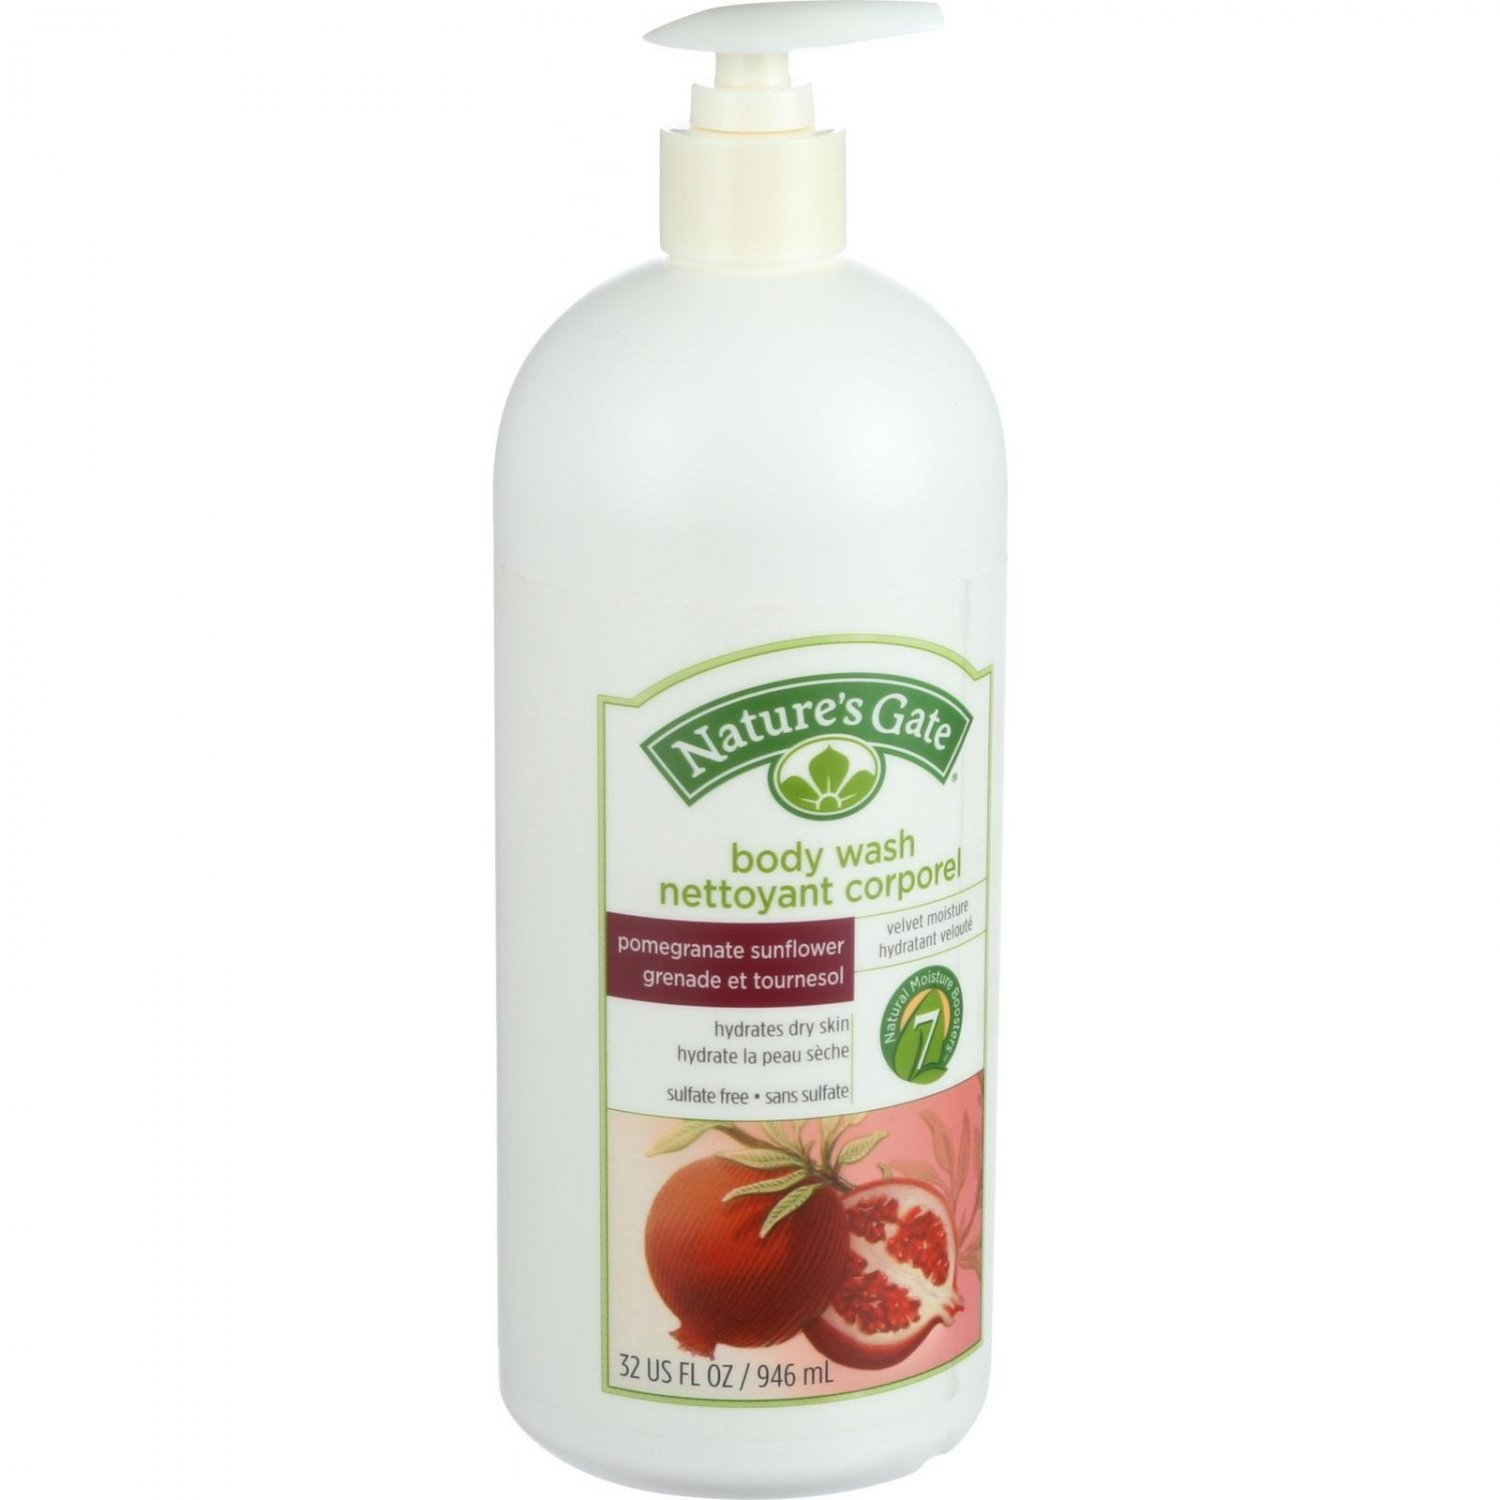 Nature's Gate Body Wash - Pomegranate Sunflower - 32 oz